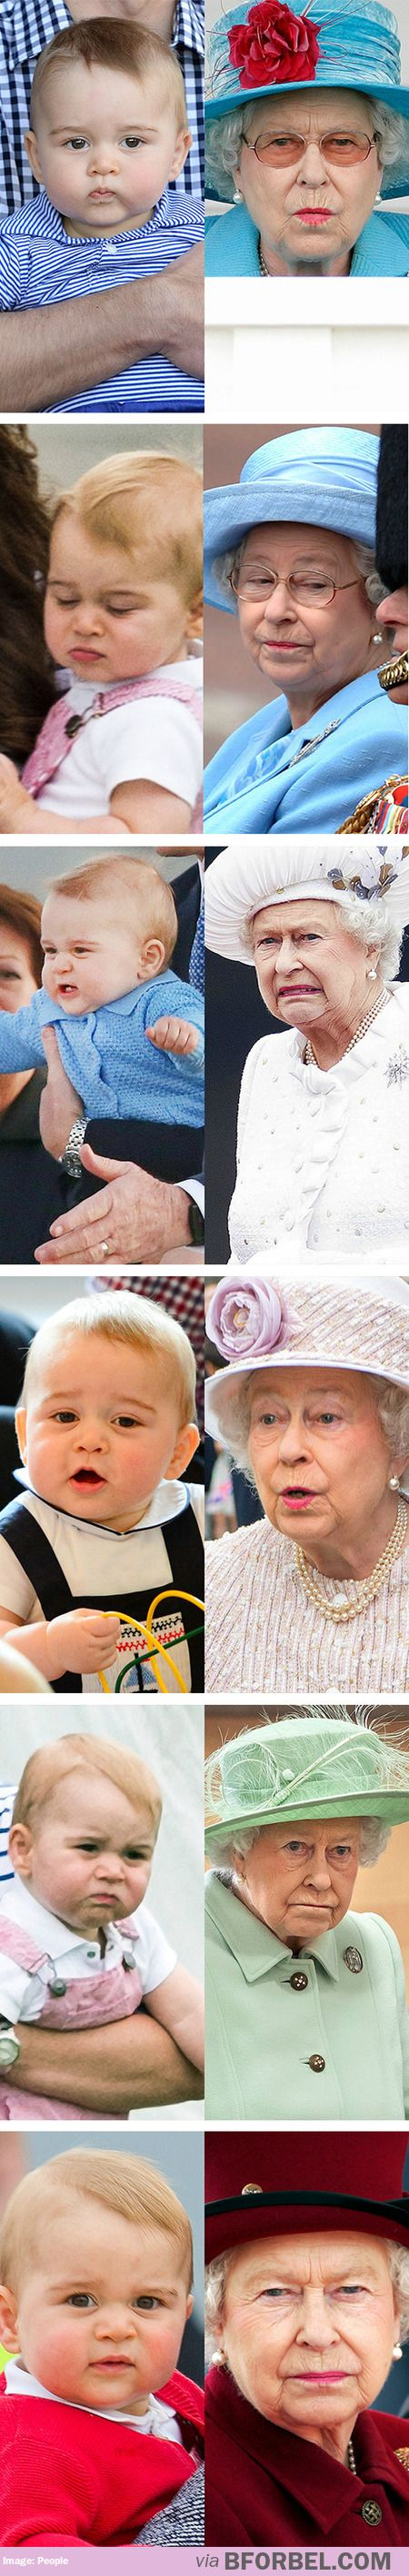 Prince George vs. Queen Elizabeth